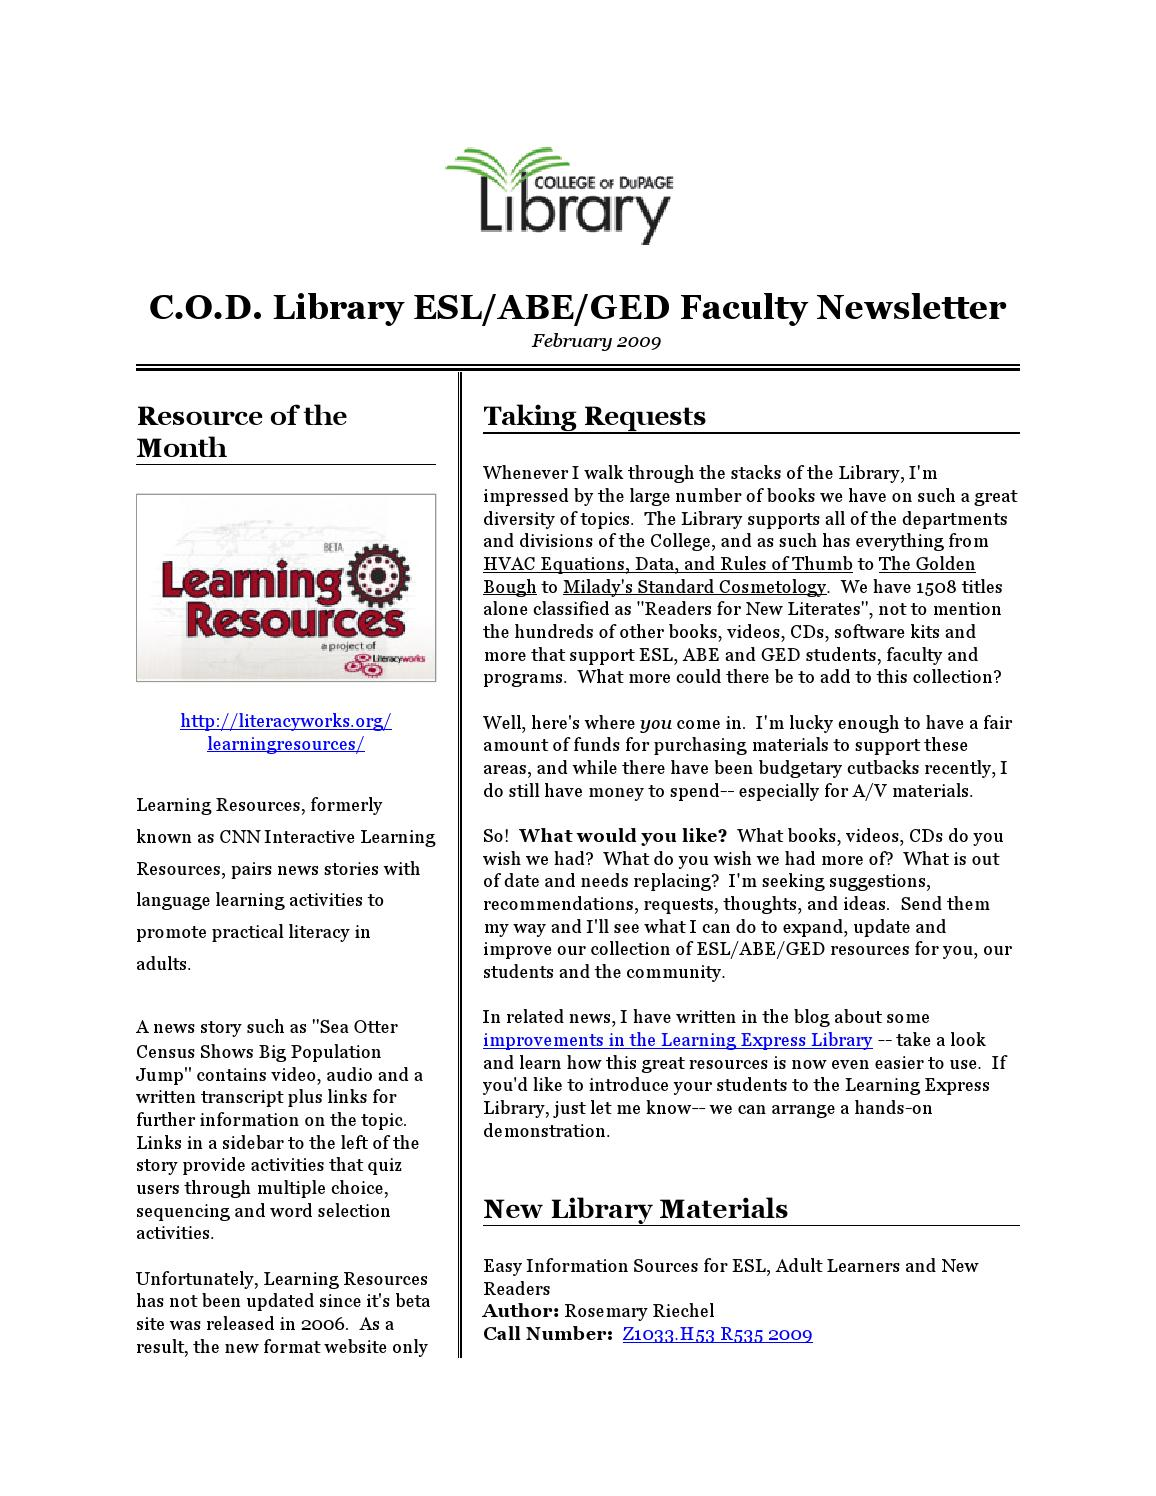 COD Library ESL/ABE/GED Faculty Newsletter: 02/09 by Jennifer Kelley